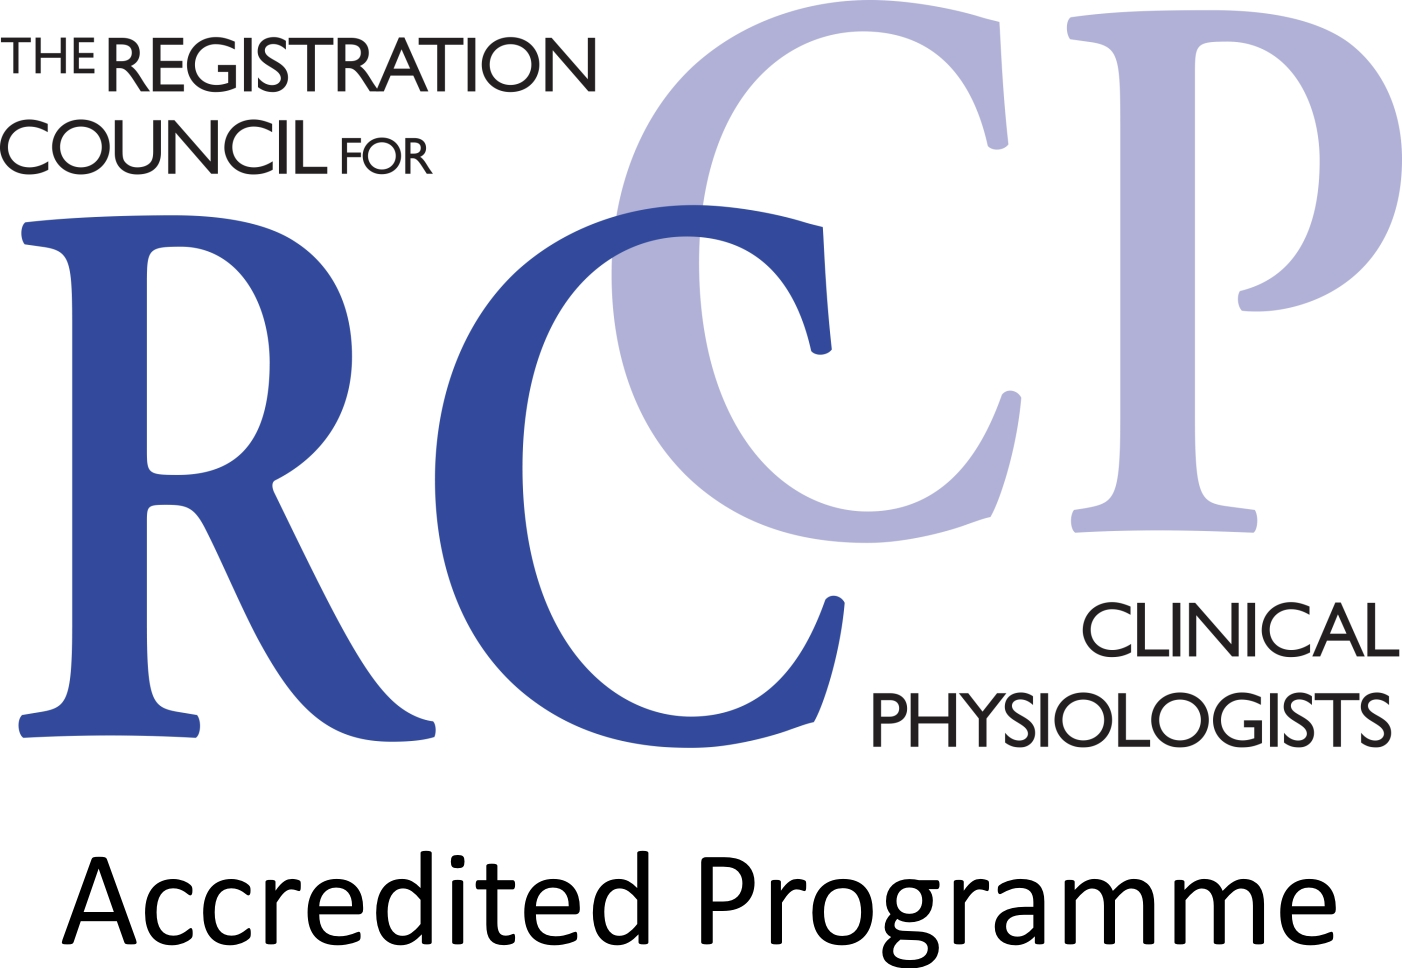 The Registration Council for Clinical Physiologists